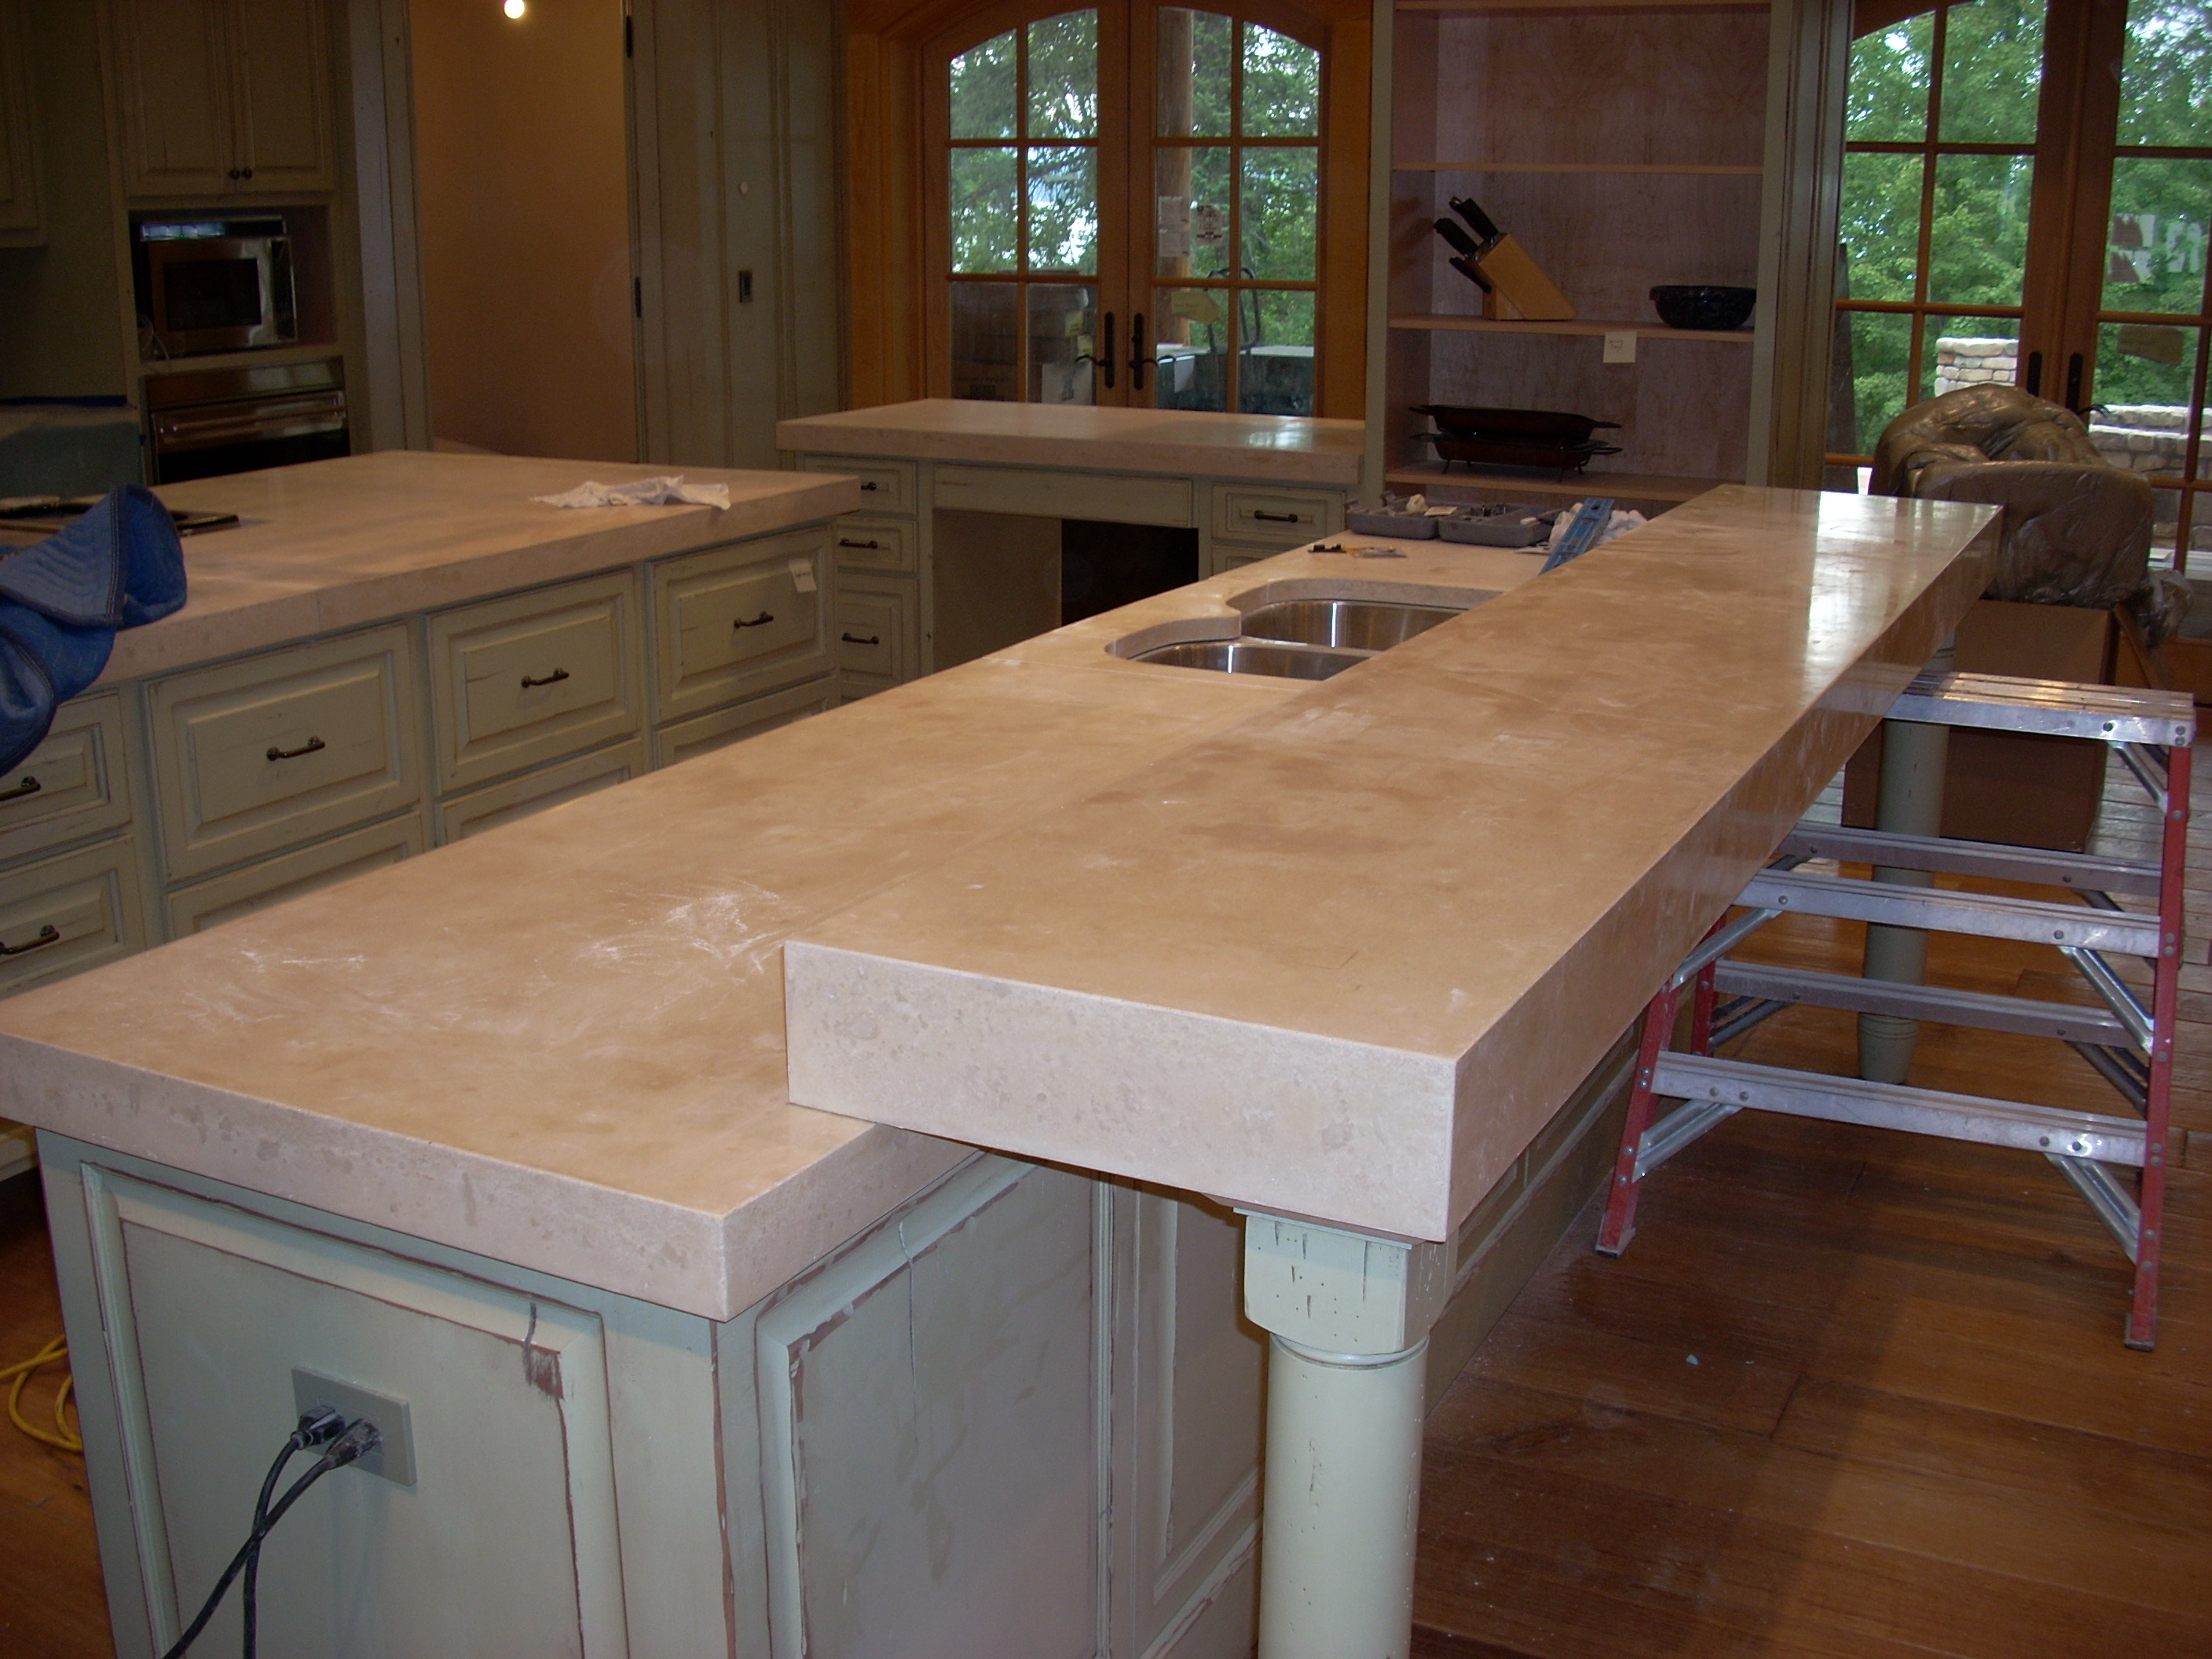 Concrete kitchen countertops modern home design and decor for Kitchen countertops